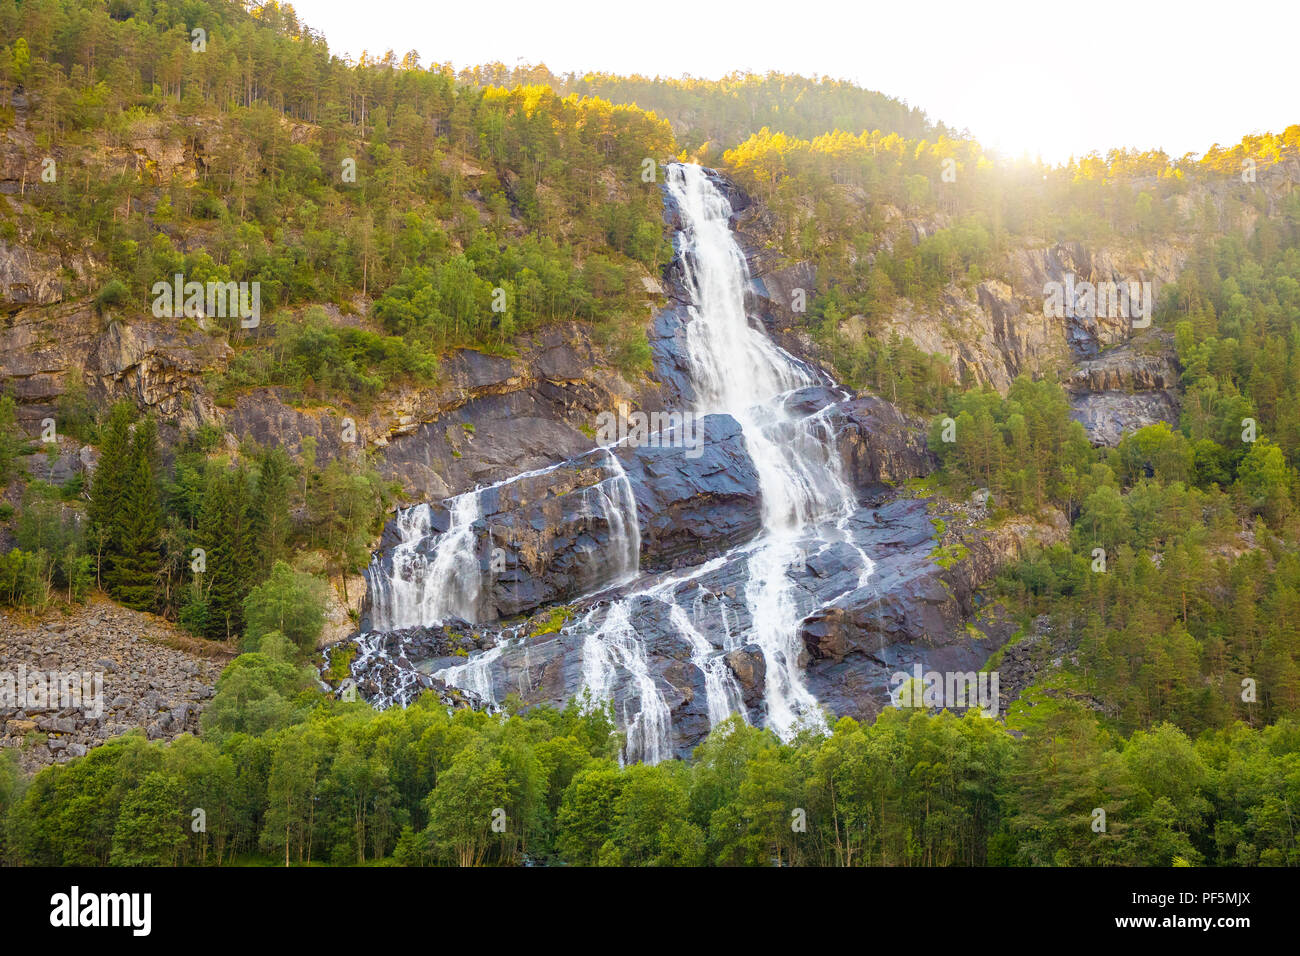 Beautiful waterfall in mountains at sunset lights, Norway - Stock Image